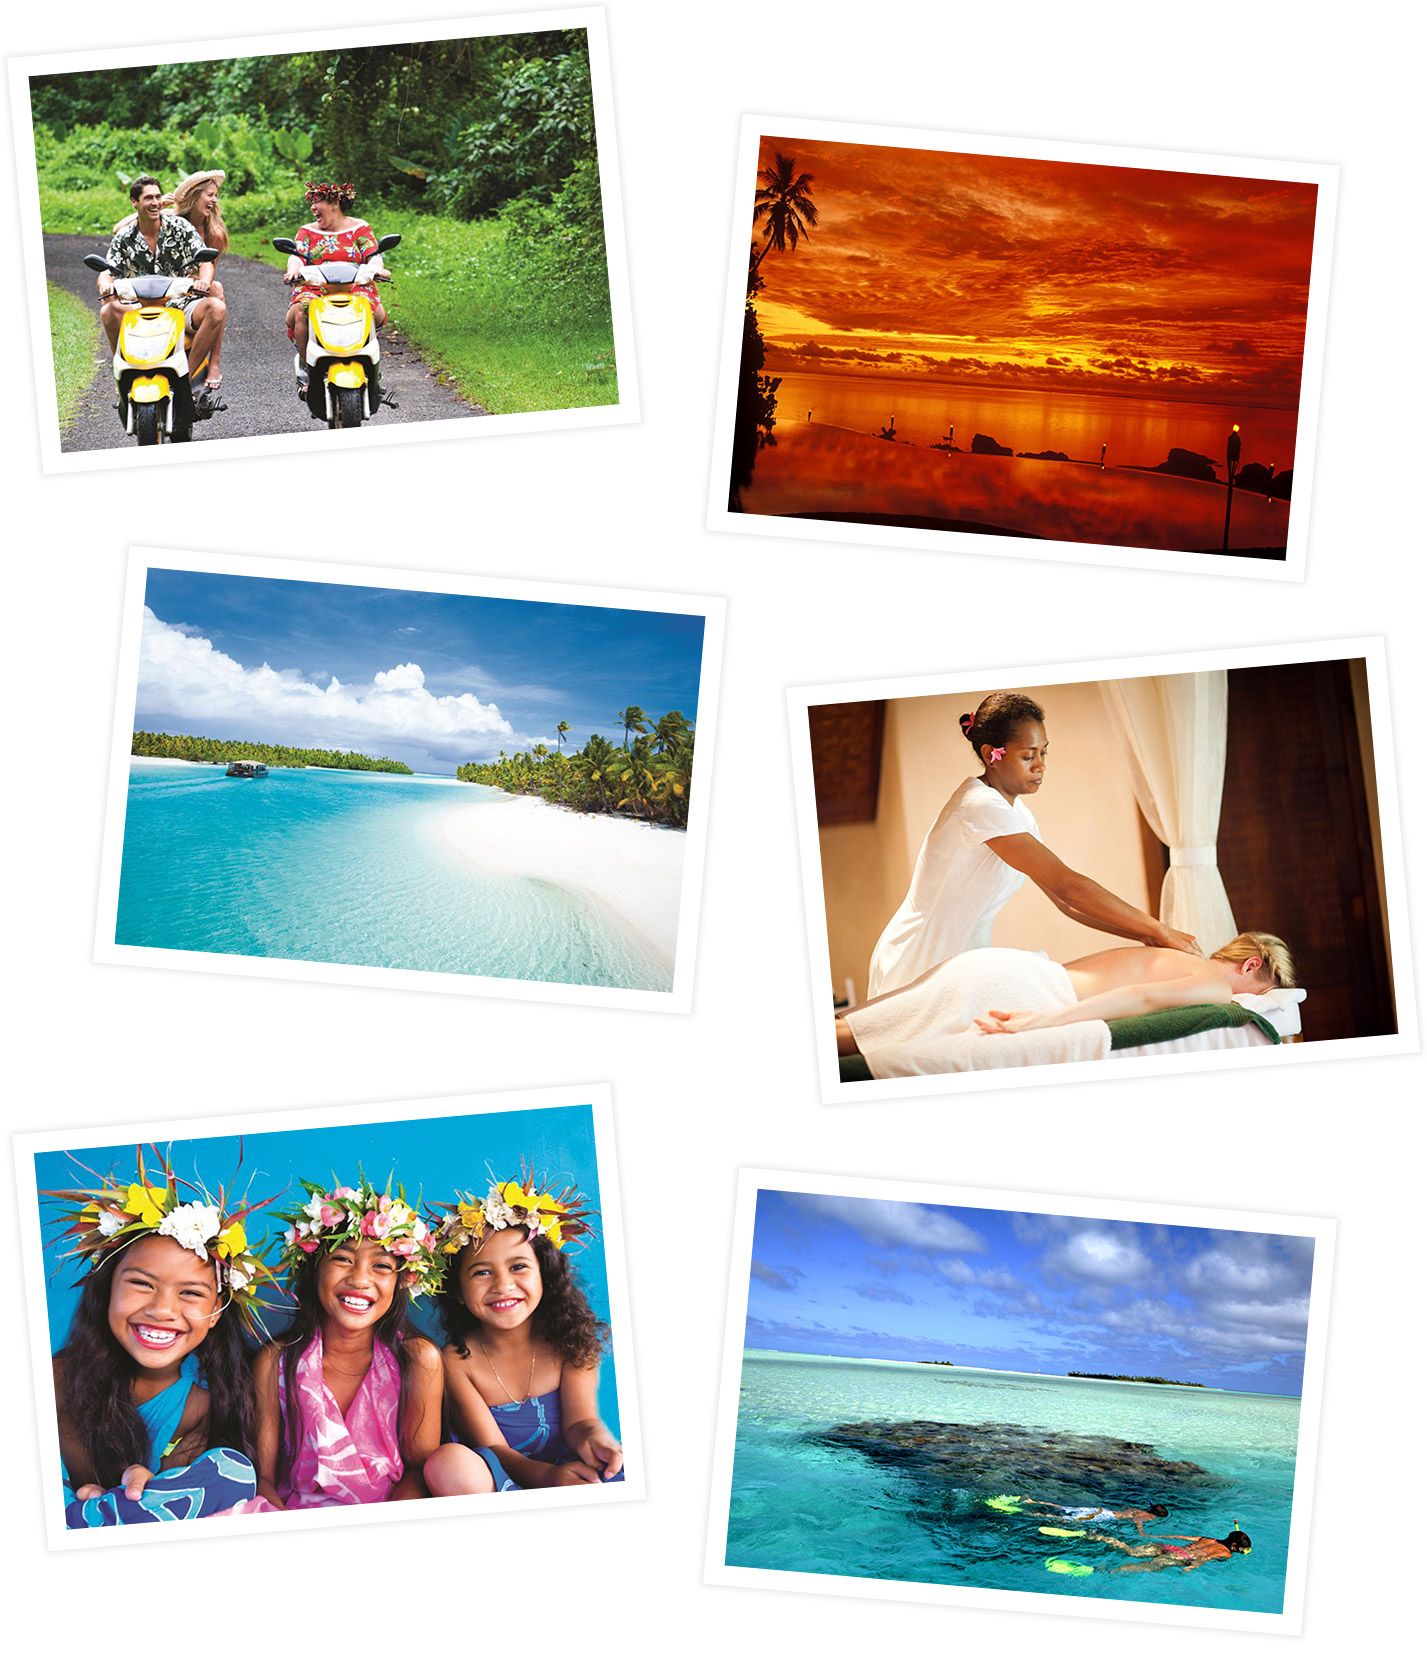 Cook Islands Travel Destinations